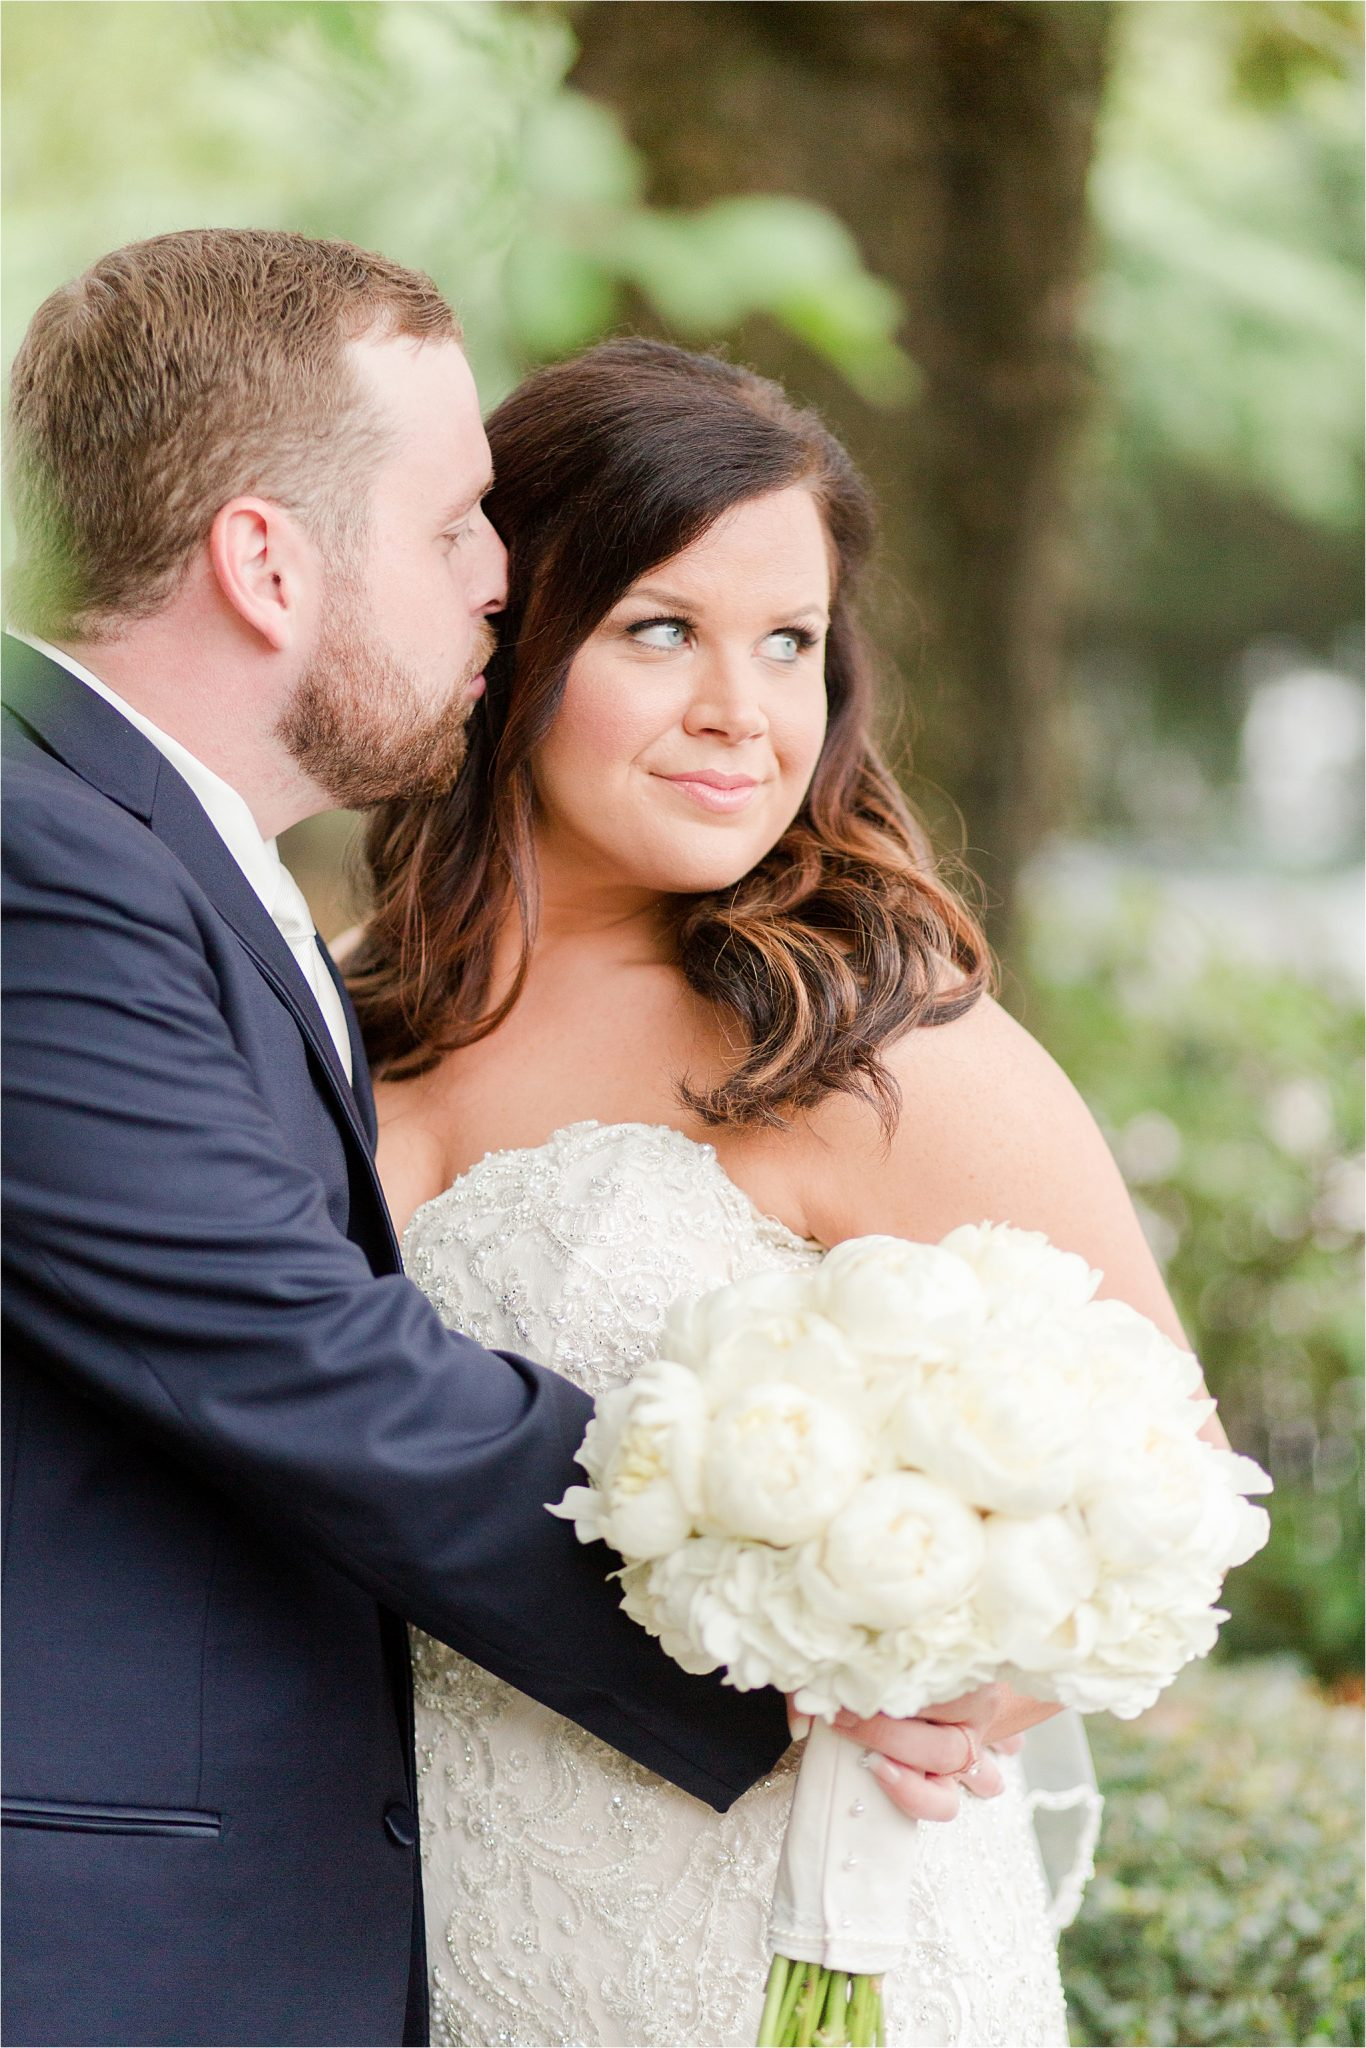 white rose bouquet-bride and groom-groom with beard-bride and groom portraits